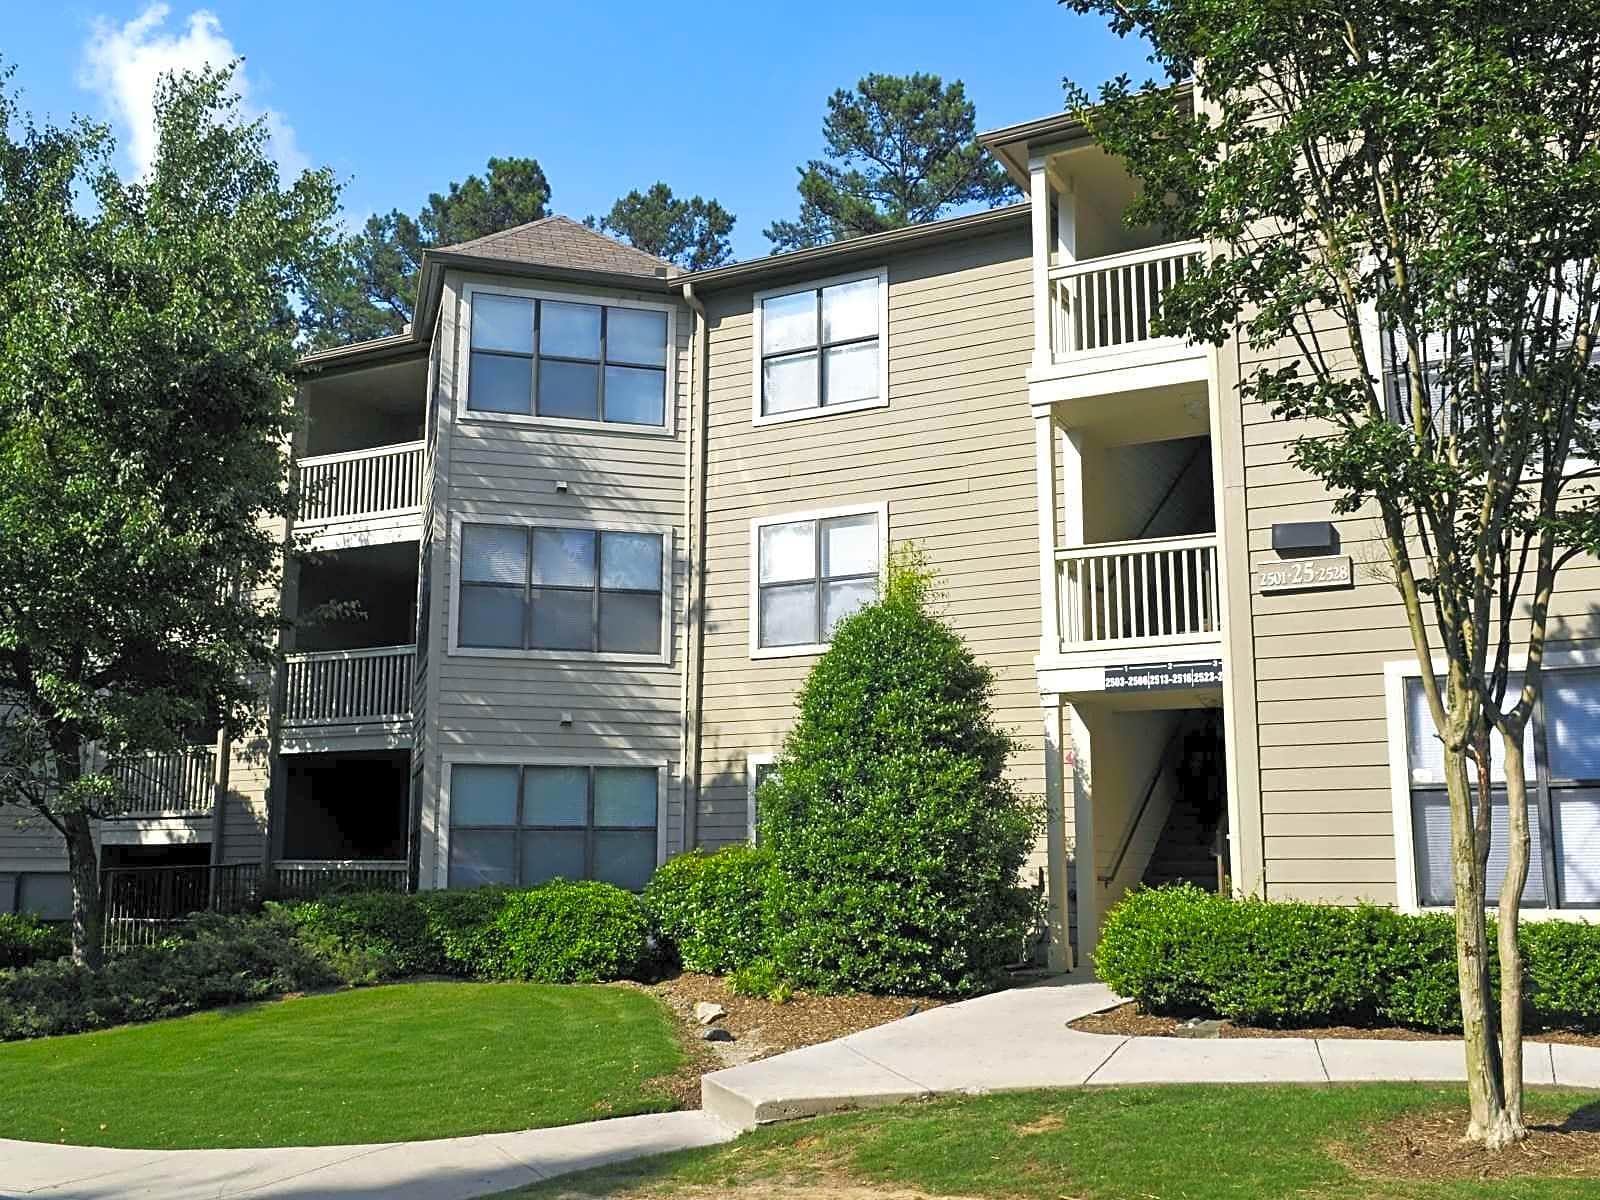 apartments for rent in norcross ga apartments and houses for rent near me in 30093